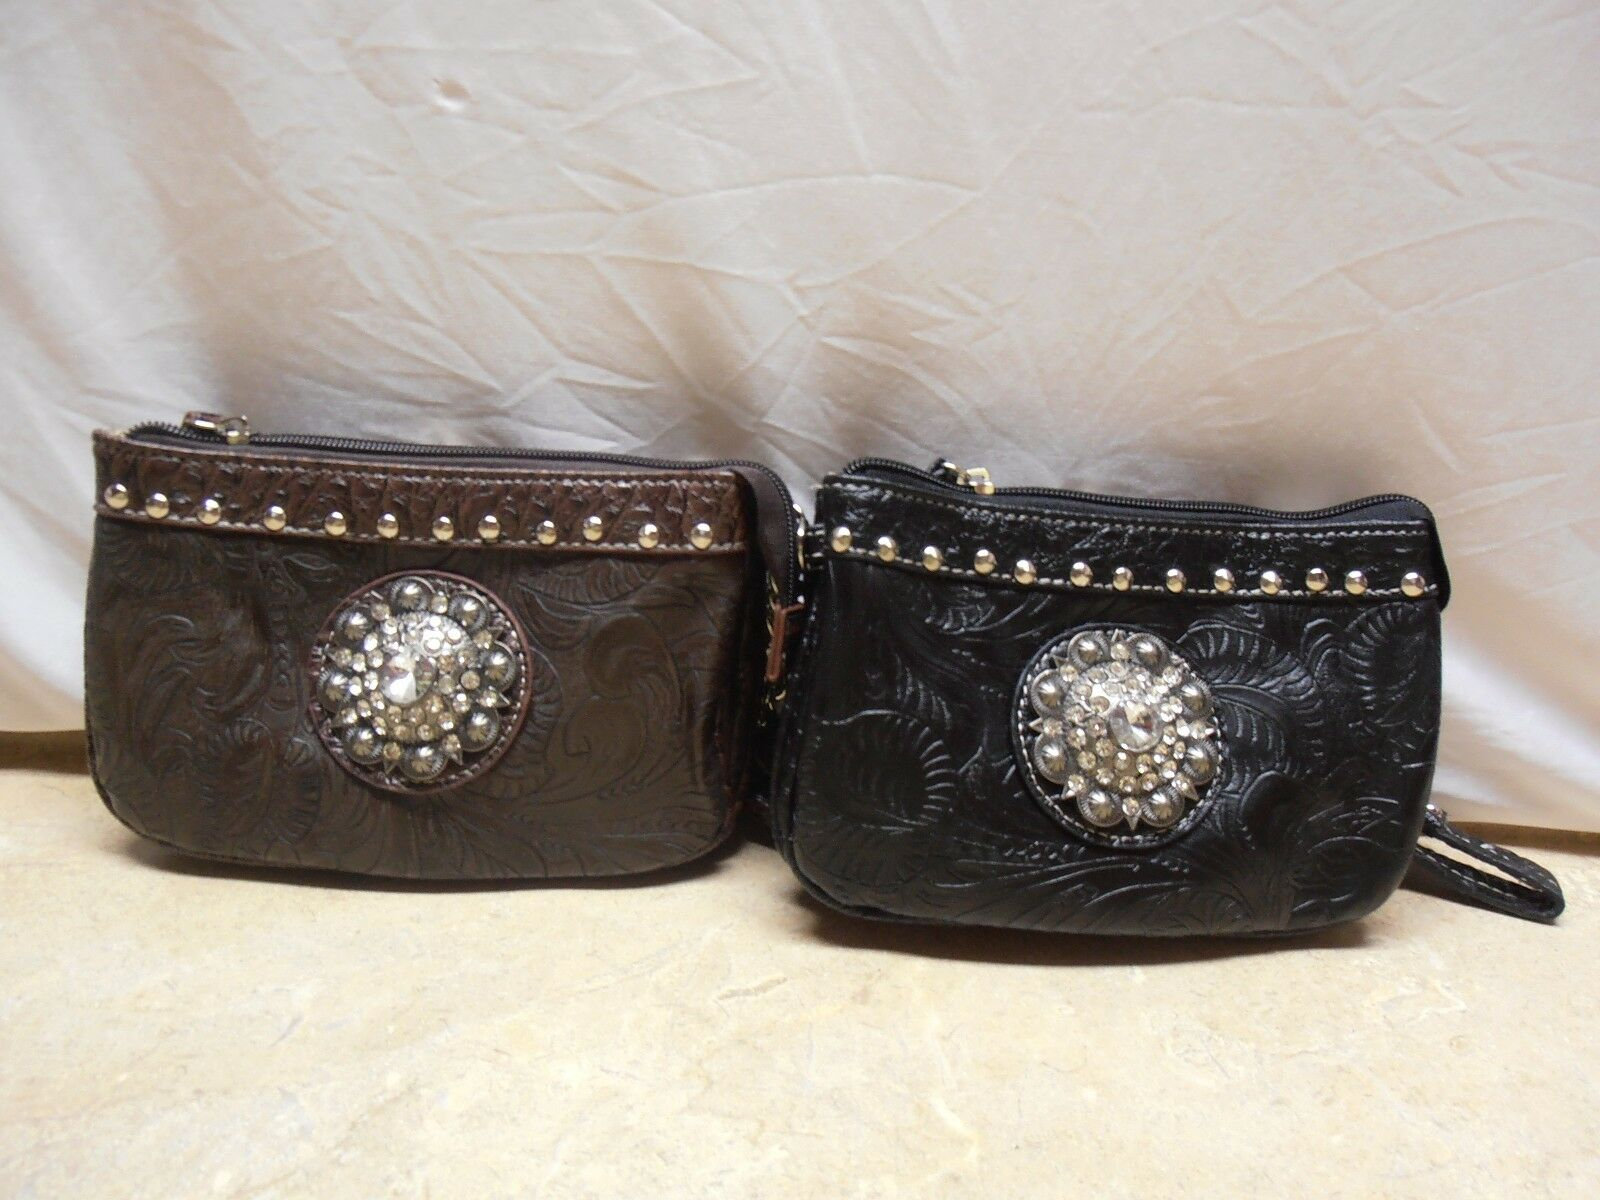 Tooled Leather Crystal Concho Wallet Clutch Wristlet Loop Handle Crossbody Purse